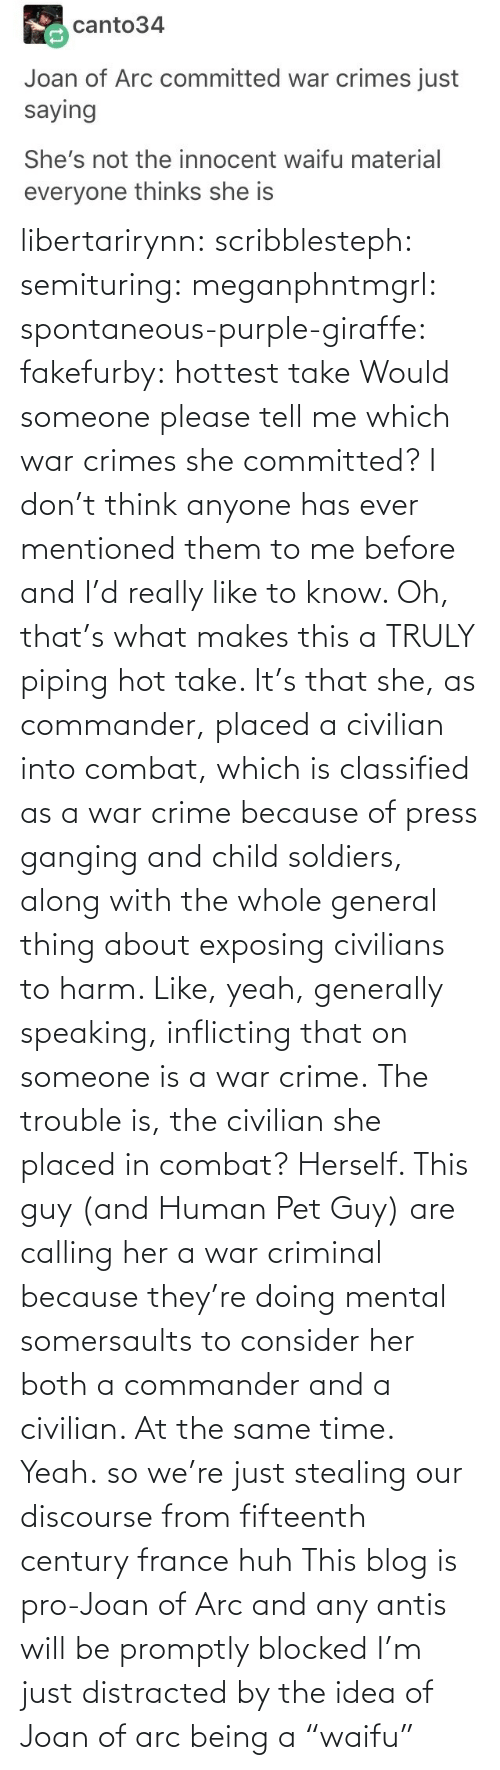 "Purple: libertarirynn: scribblesteph:  semituring:  meganphntmgrl:  spontaneous-purple-giraffe:   fakefurby: hottest take  Would someone please tell me which war crimes she committed? I don't think anyone has ever mentioned them to me before and I'd really like to know.    Oh, that's what makes this a TRULY piping hot take. It's that she, as commander, placed a civilian into combat, which is classified as a war crime because of press ganging and child soldiers, along with the whole general thing about exposing civilians to harm. Like, yeah, generally speaking, inflicting that on someone is a war crime. The trouble is, the civilian she placed in combat? Herself.  This guy (and Human Pet Guy) are calling her a war criminal because they're doing mental somersaults to consider her both a commander and a civilian. At the same time.  Yeah.  so we're just stealing our discourse from fifteenth century france huh   This blog is pro-Joan of Arc and any antis will be promptly blocked   I'm just distracted by the idea of Joan of arc being a ""waifu"""